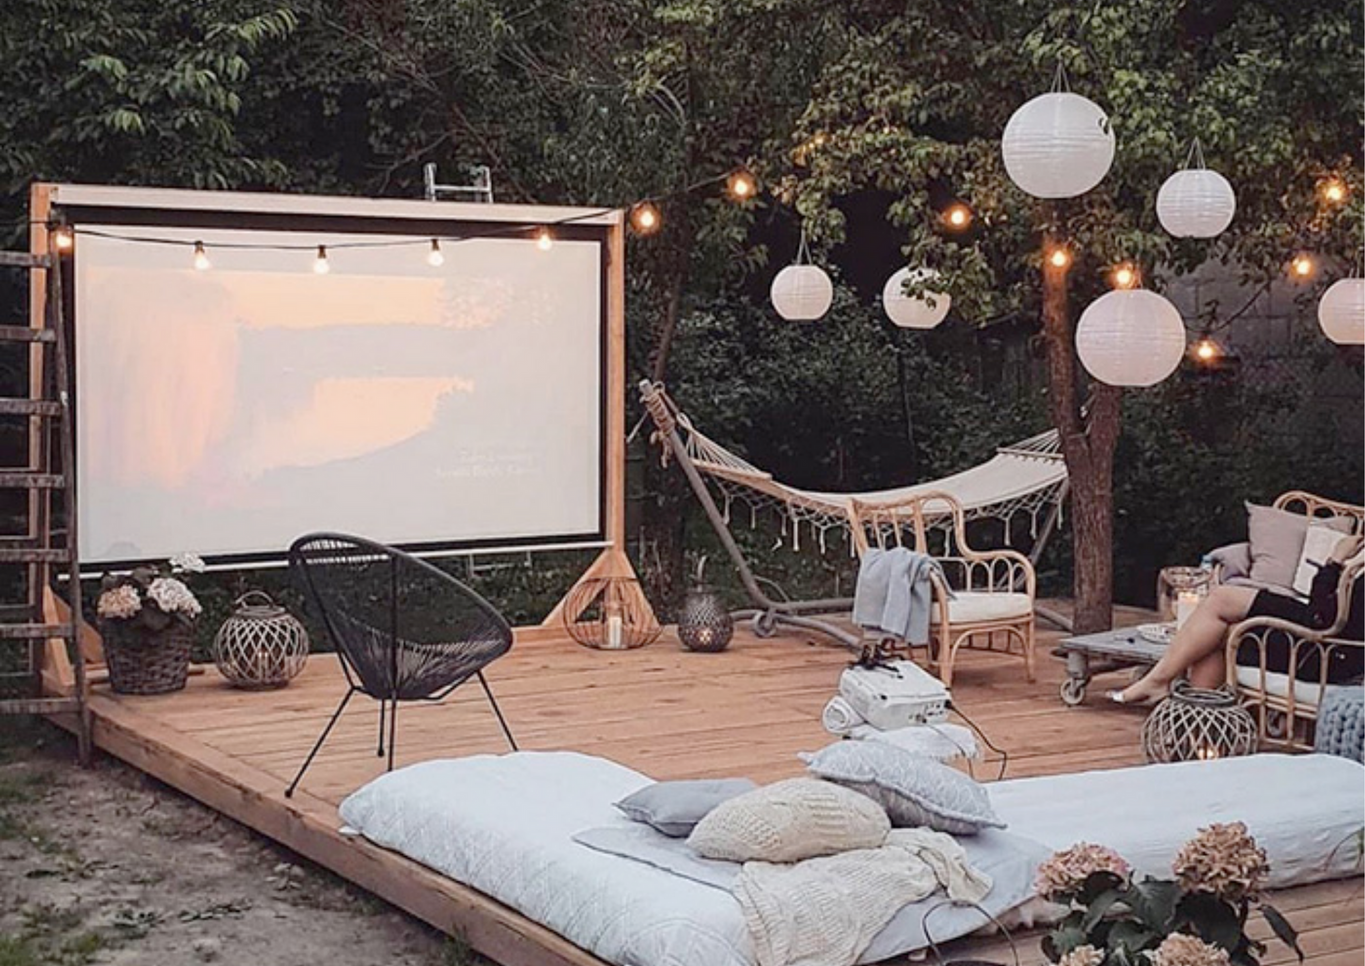 Outdoor cinema set up with lots of soft lighting